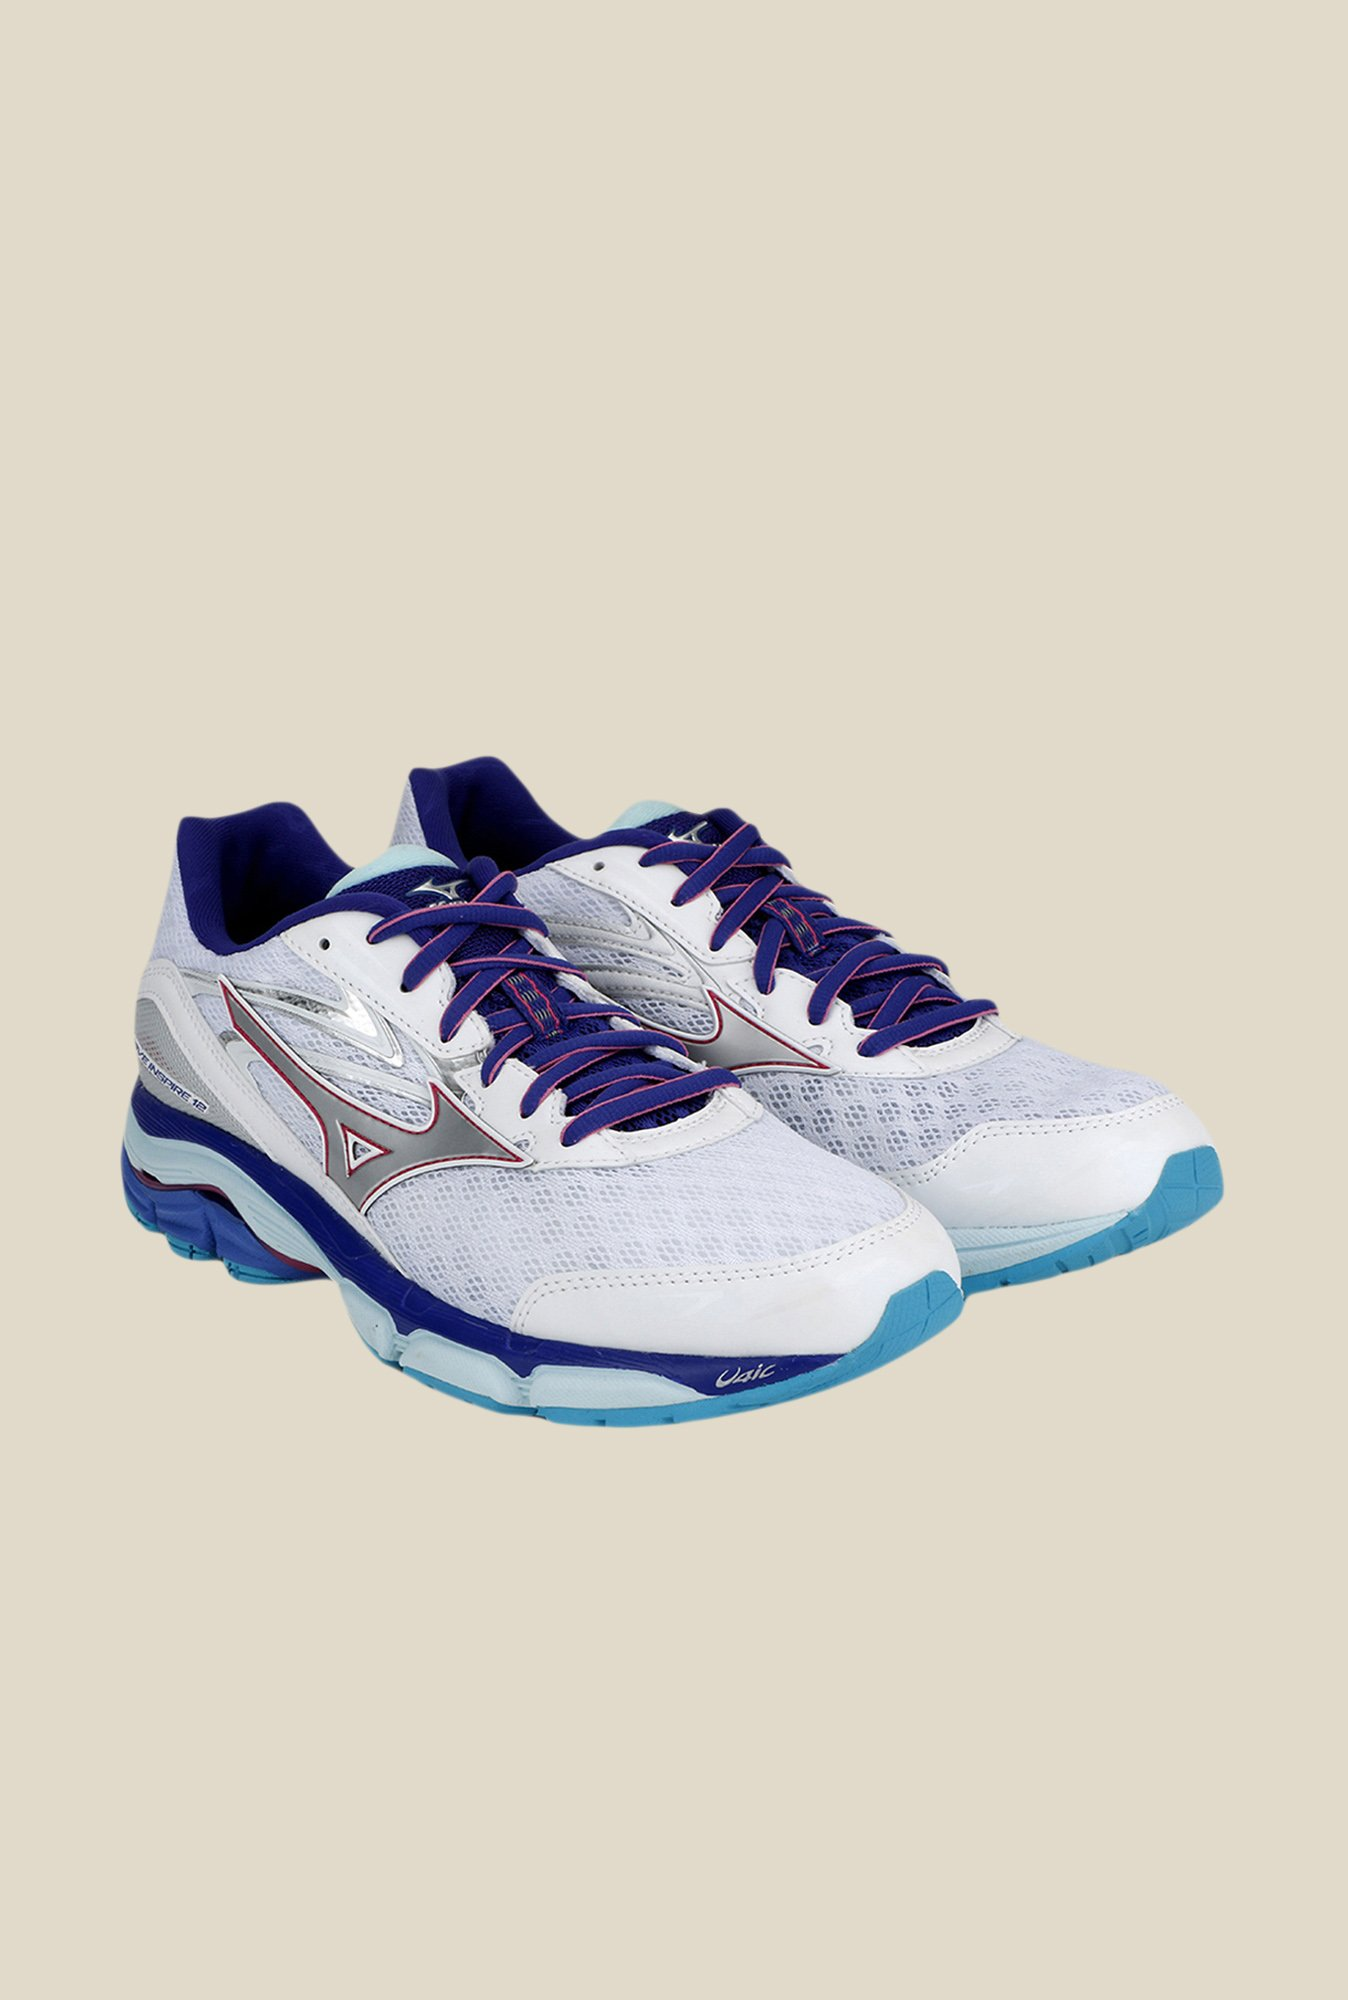 Mizuno Wave Inspire 12 White & Blue Running Shoes